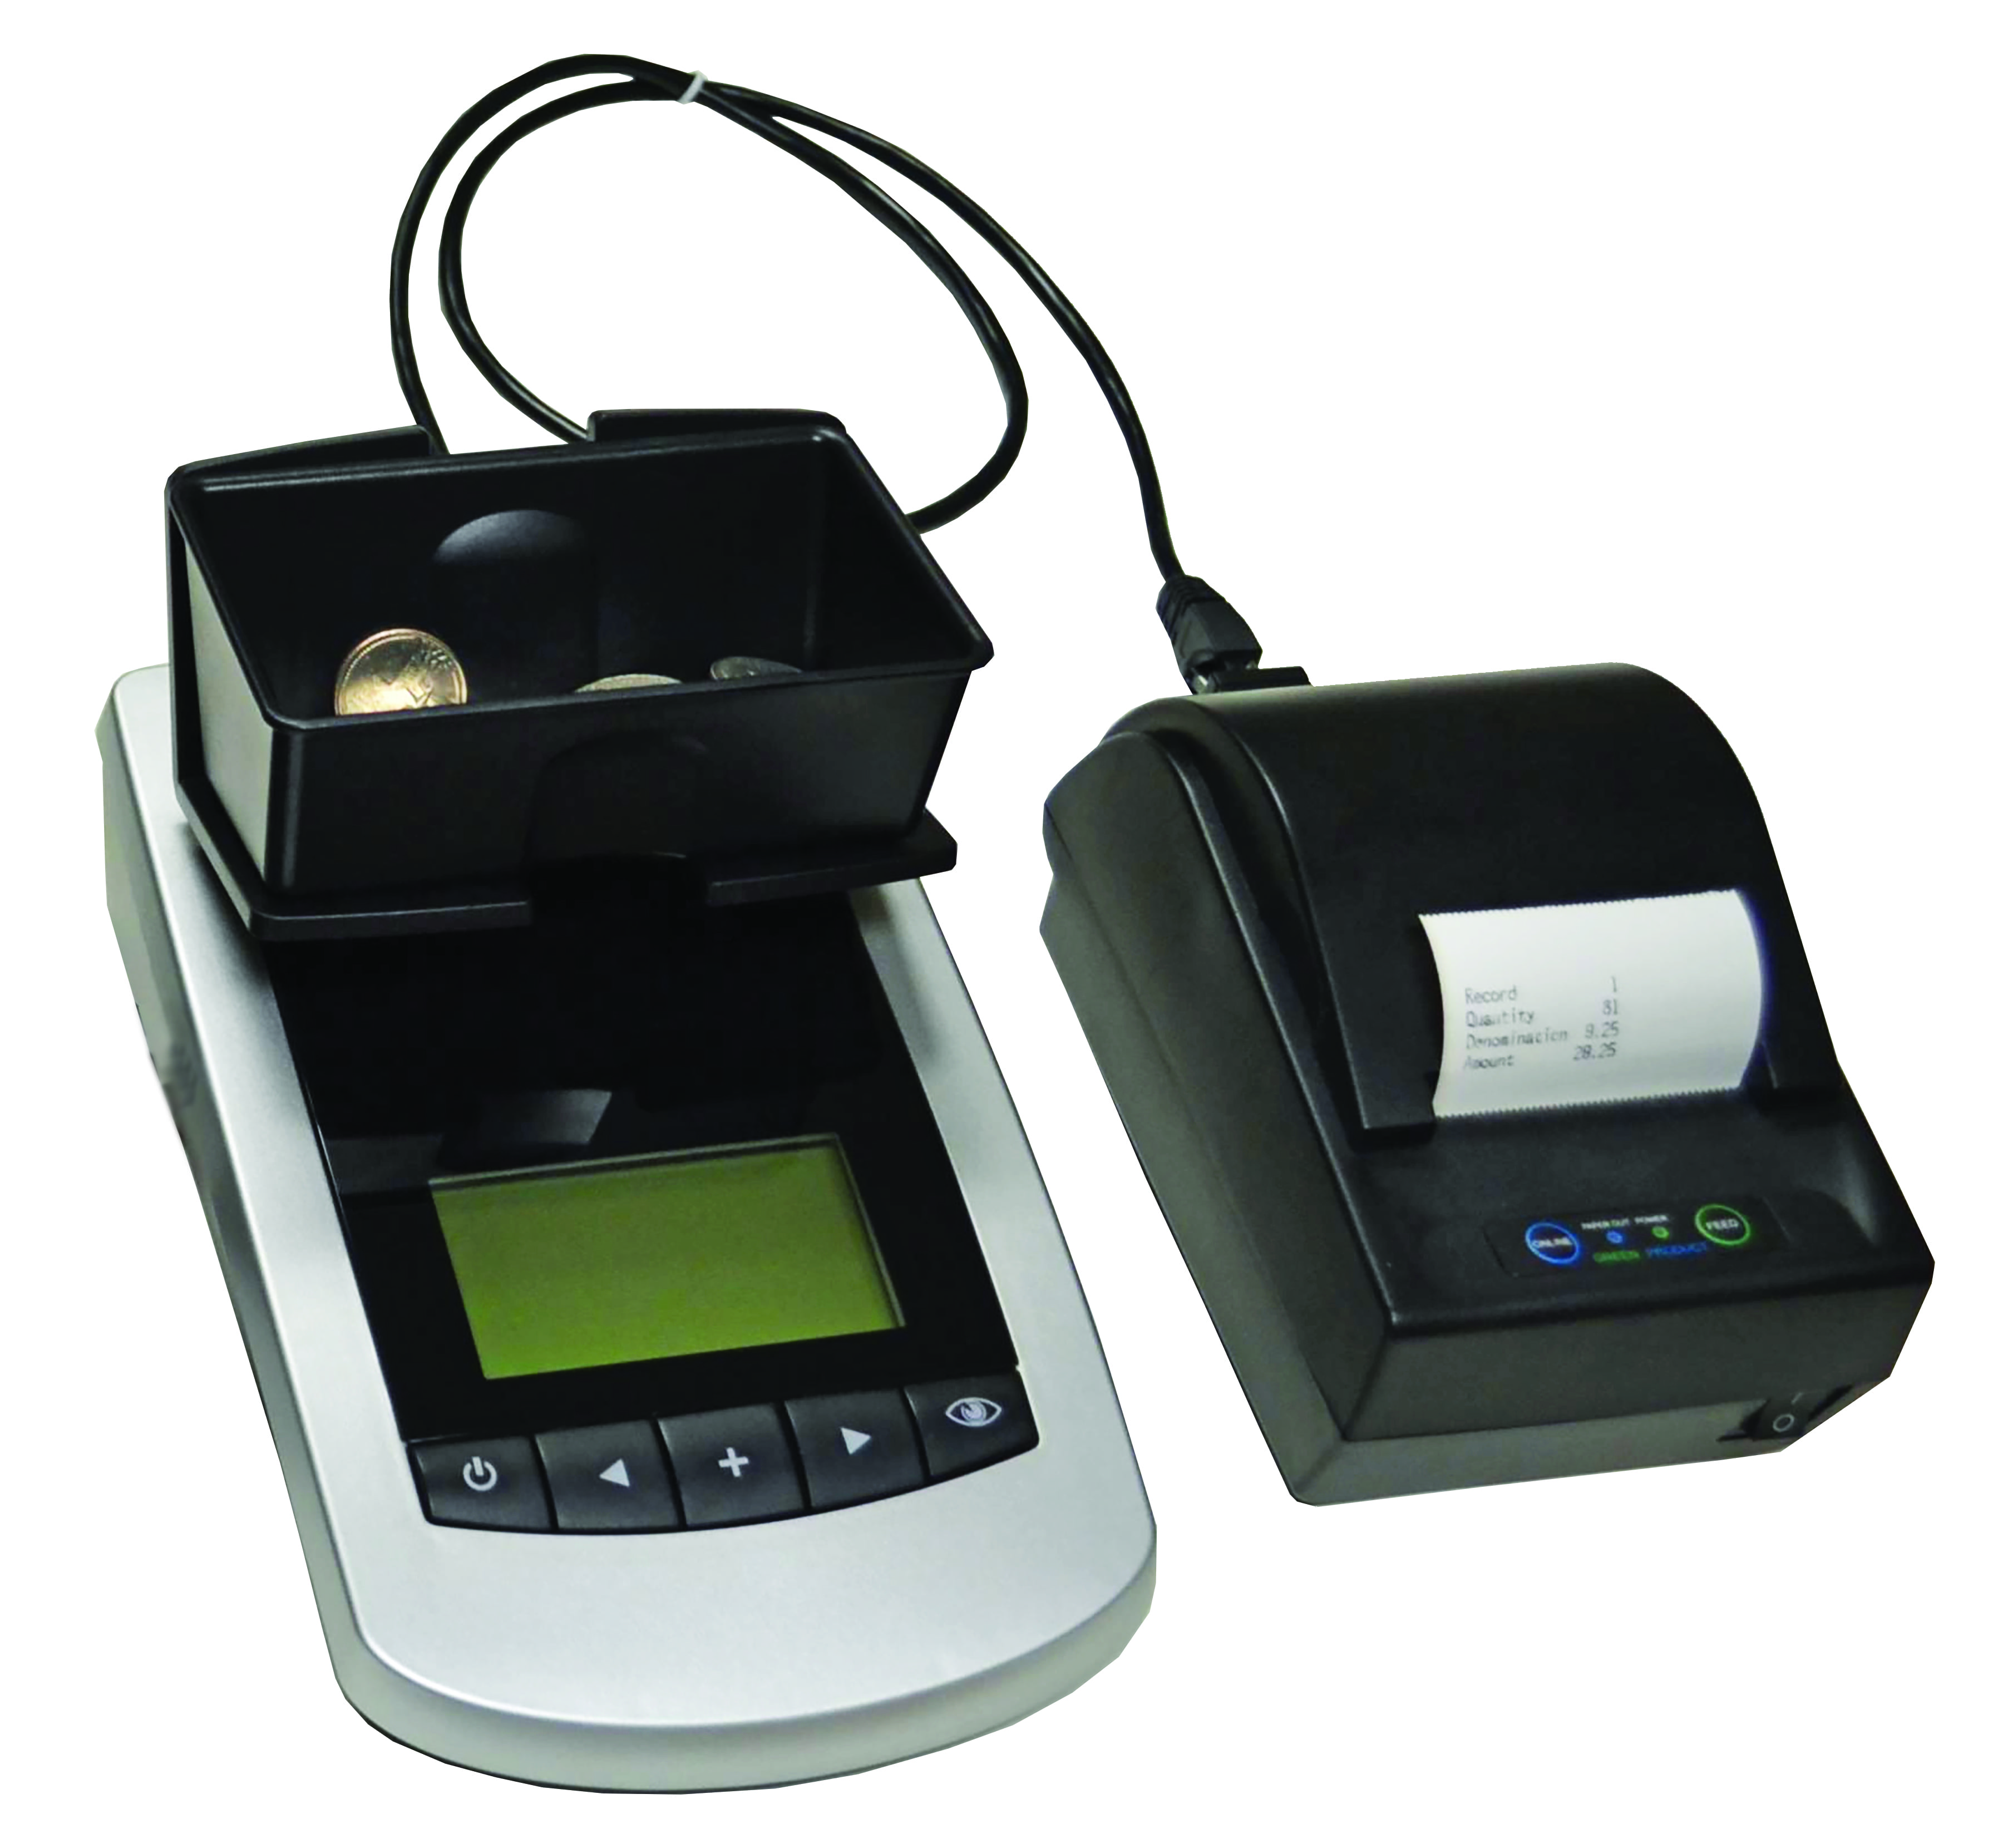 MCS-1000: Money Counting Scale & Optional Printer